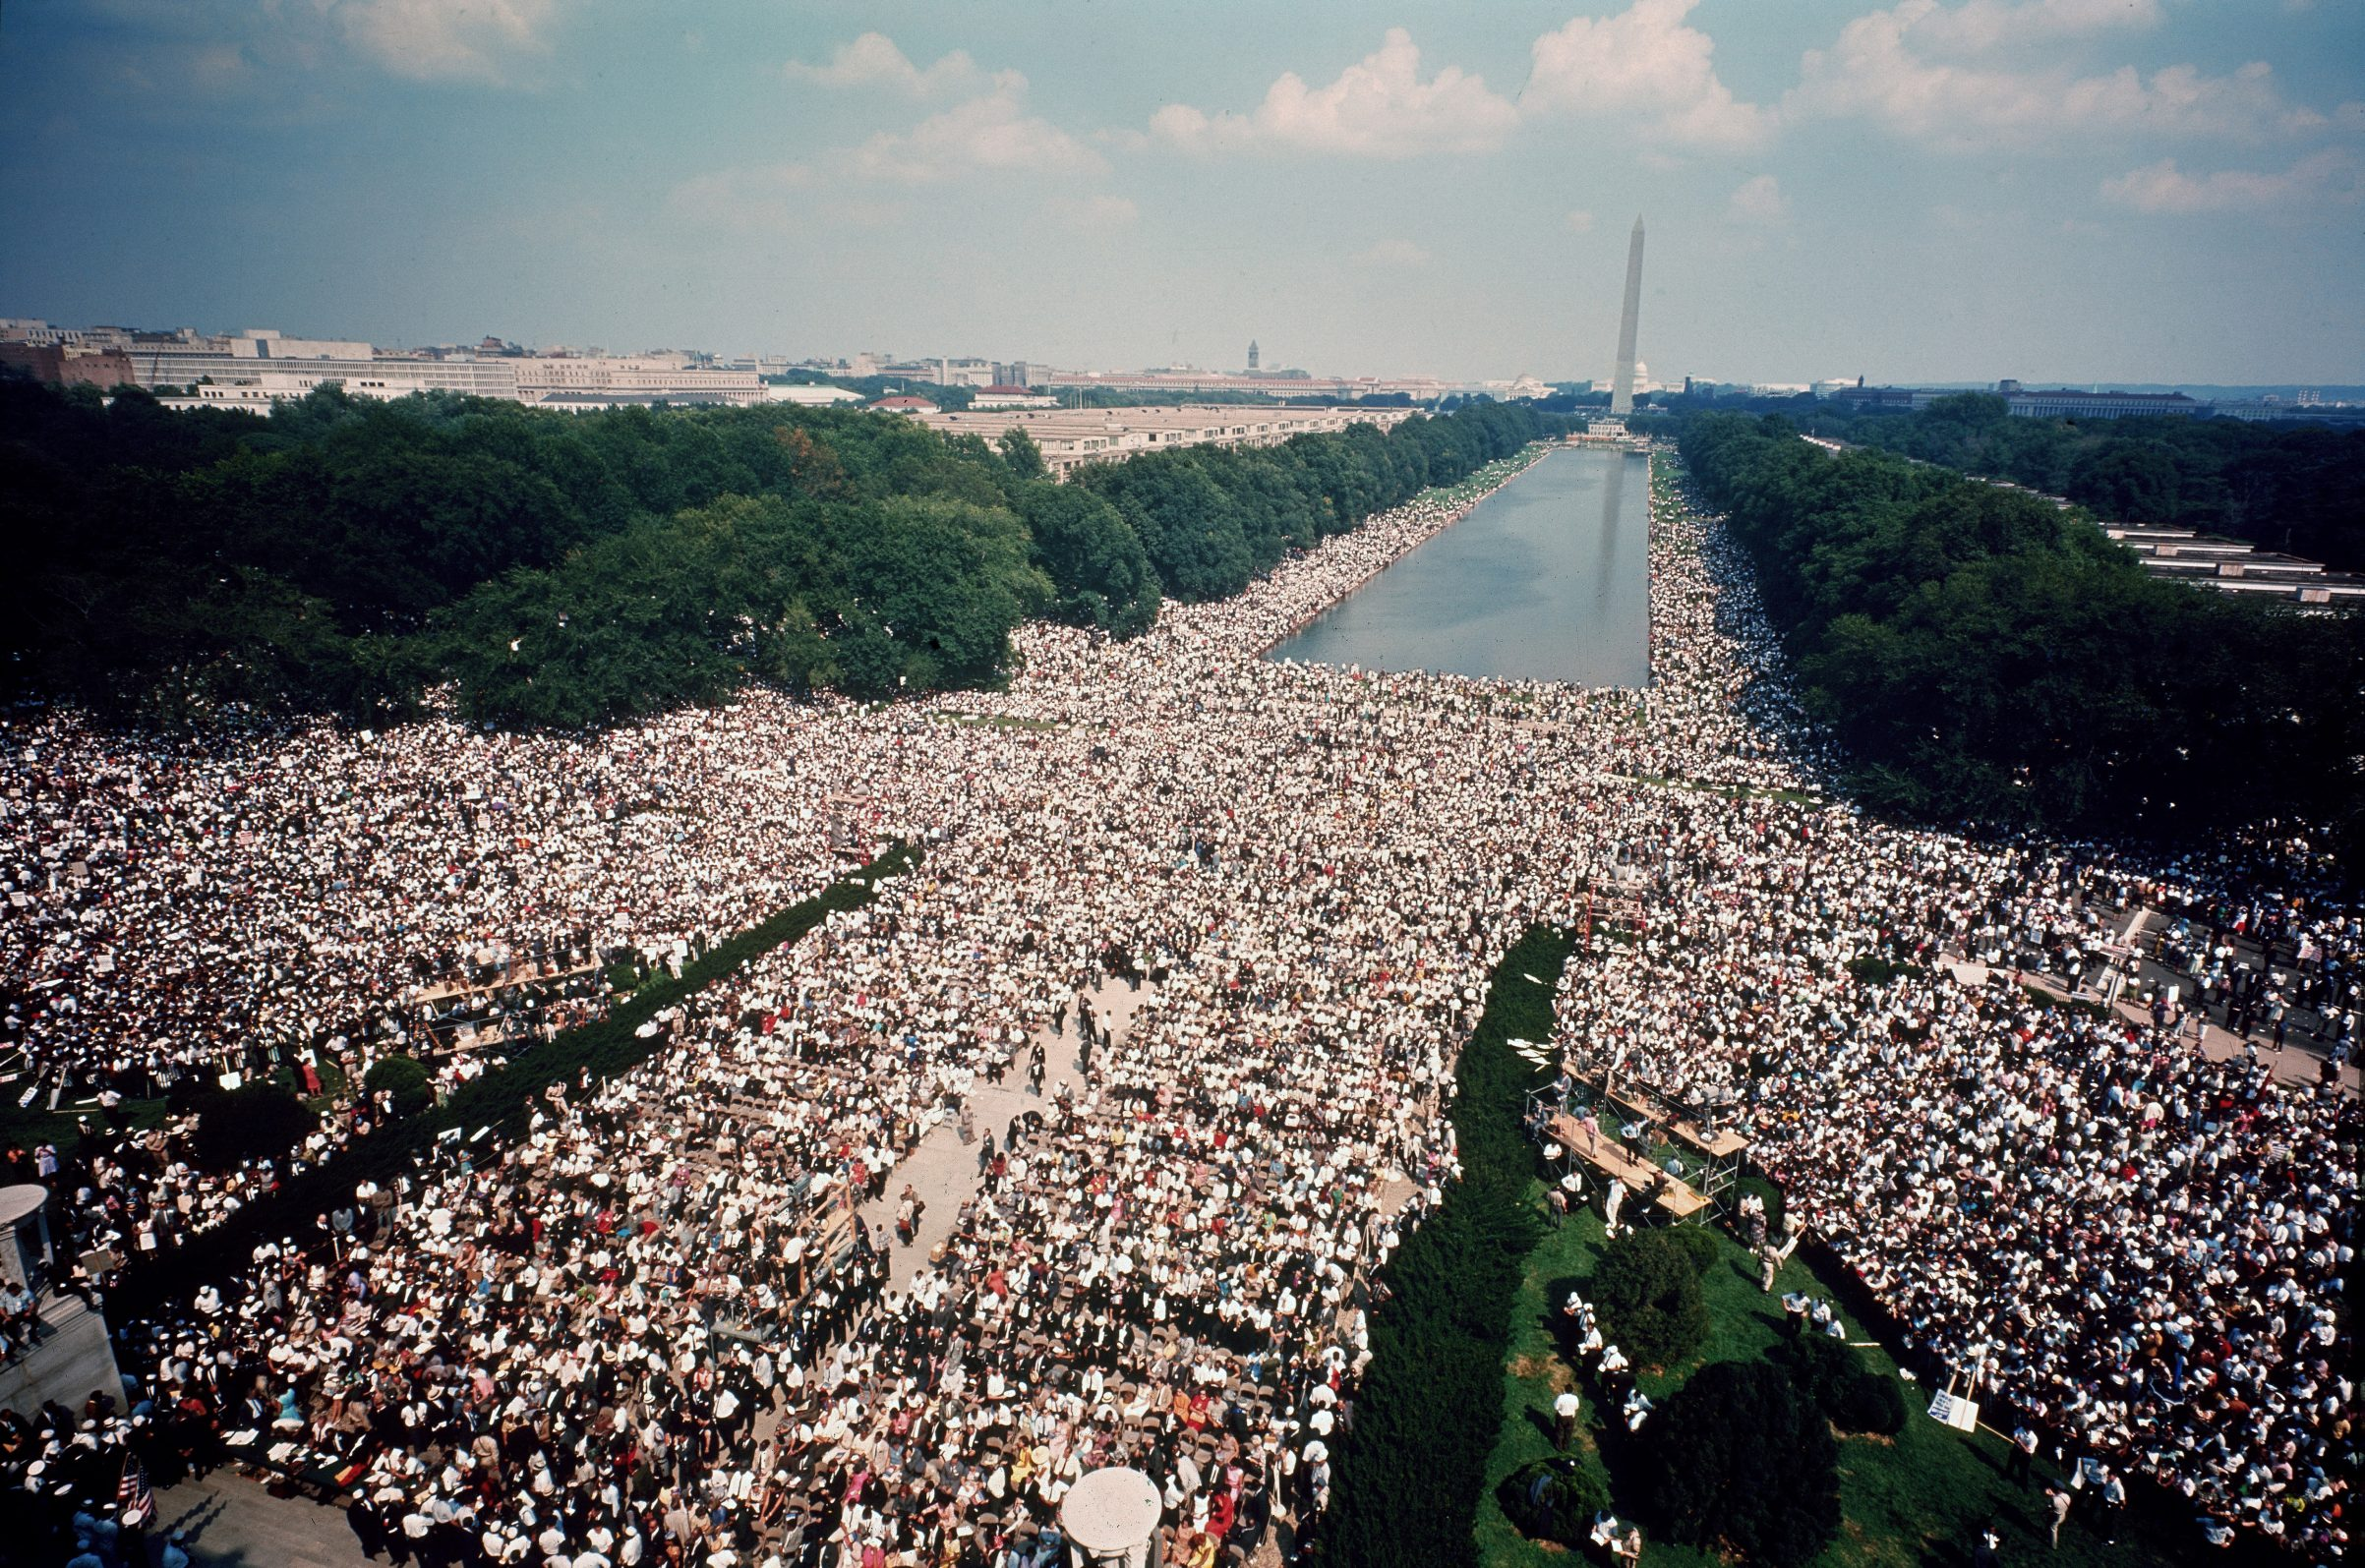 Overhead view of the massive crowd assembled on the Mall in front of the Reflecting Pool and between the Lincoln and Washington monuments during the civil rights March on Washington for Jobs and Freedom, Washington D.C., Aug. 28, 1963.